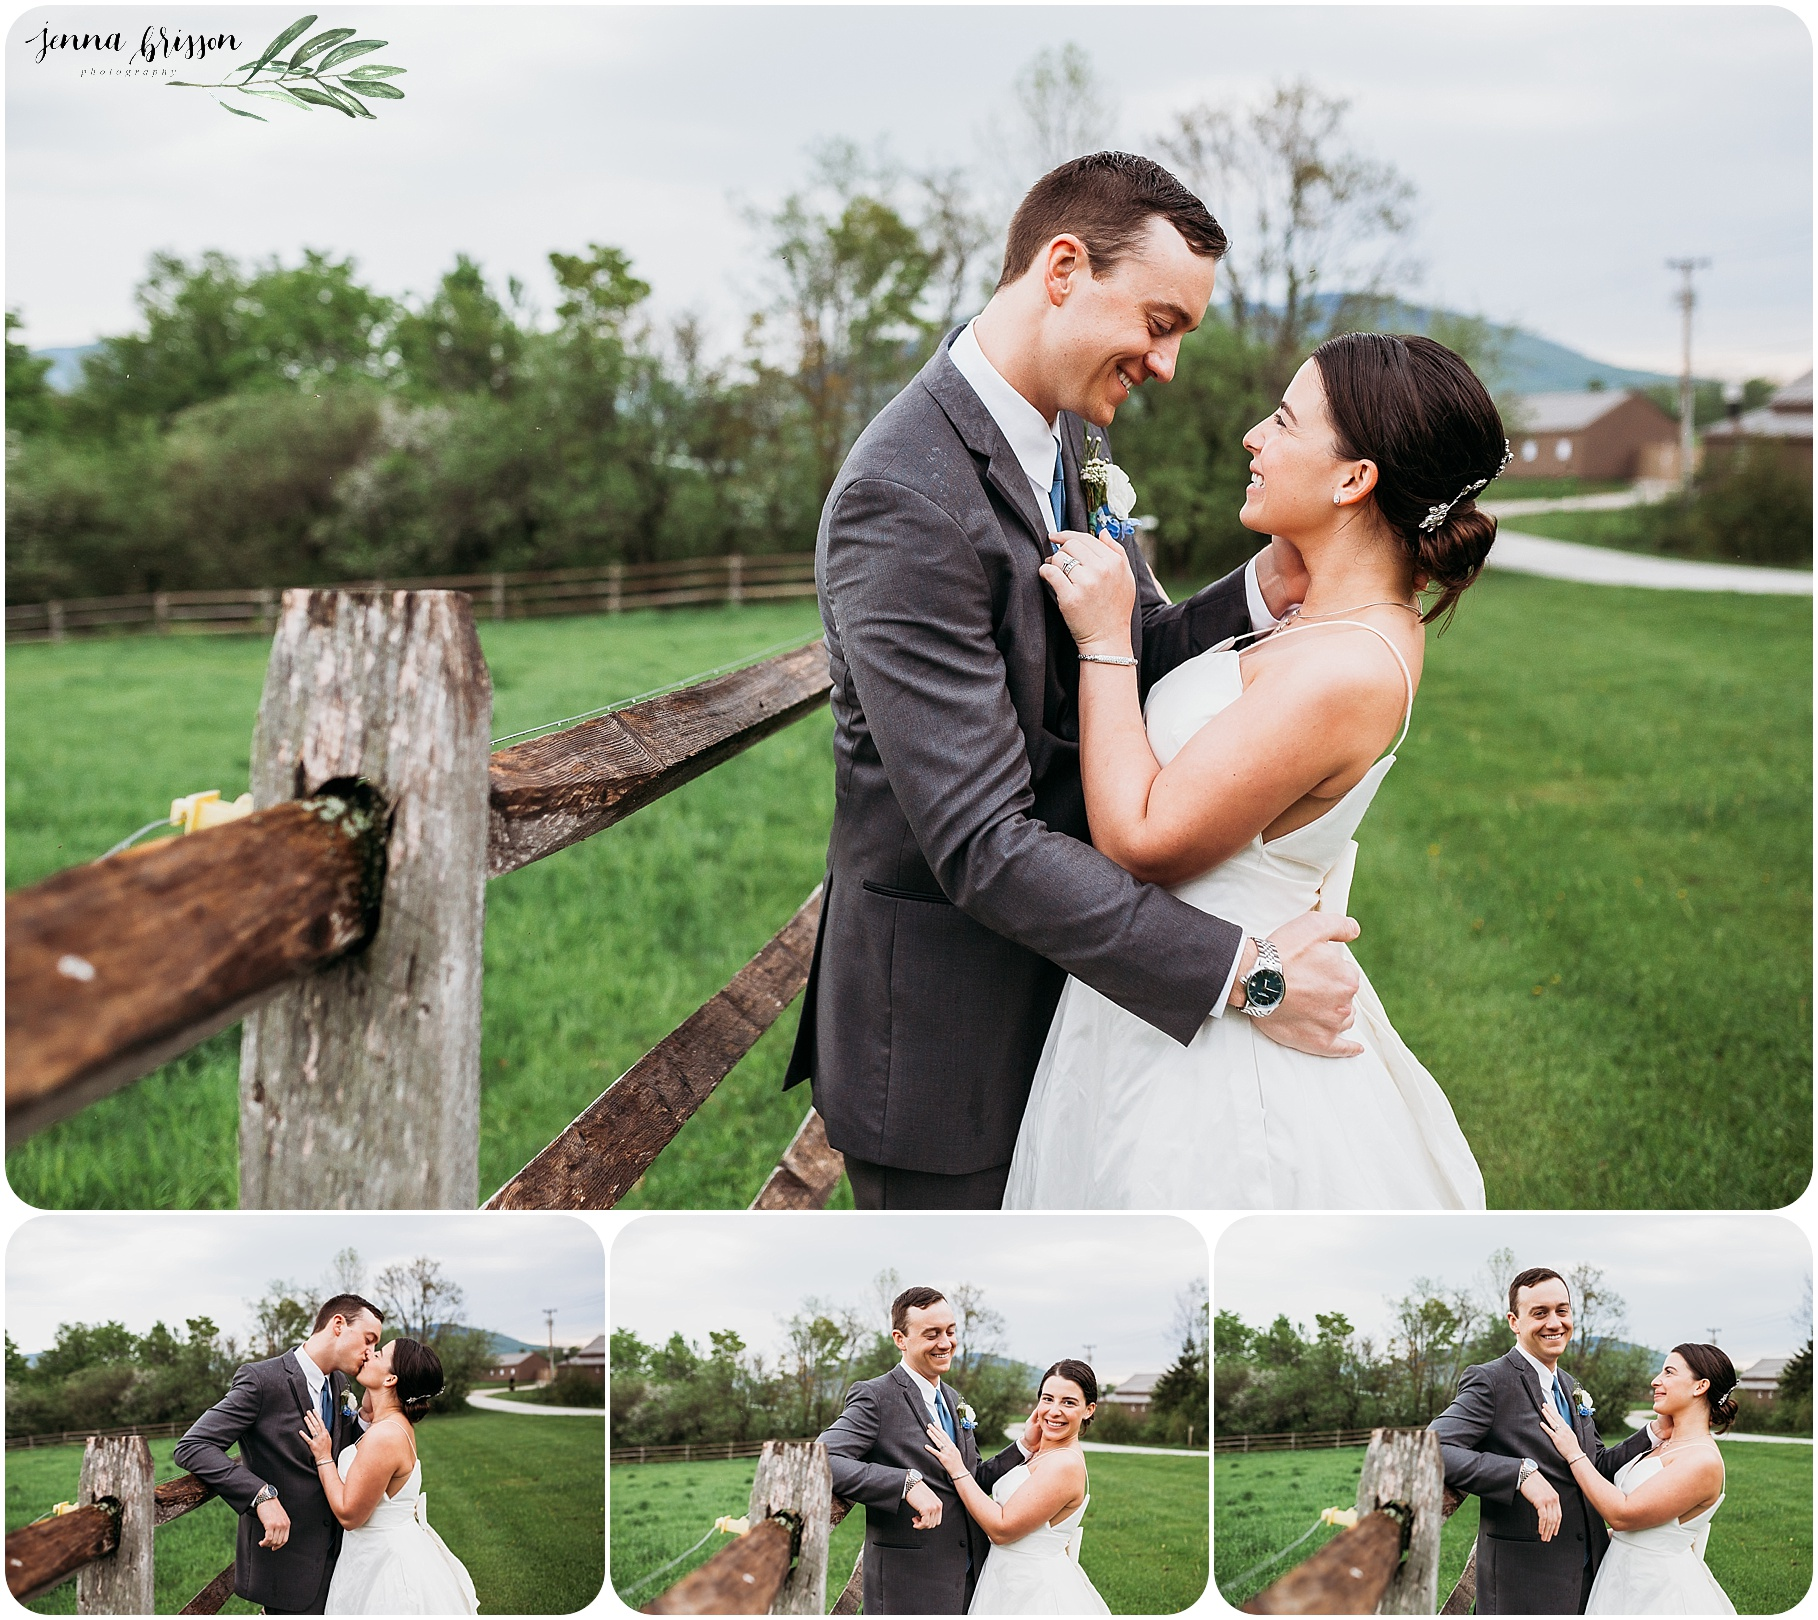 Mountain Top Inn Elopement Vermont 4 - Jenna Brisson